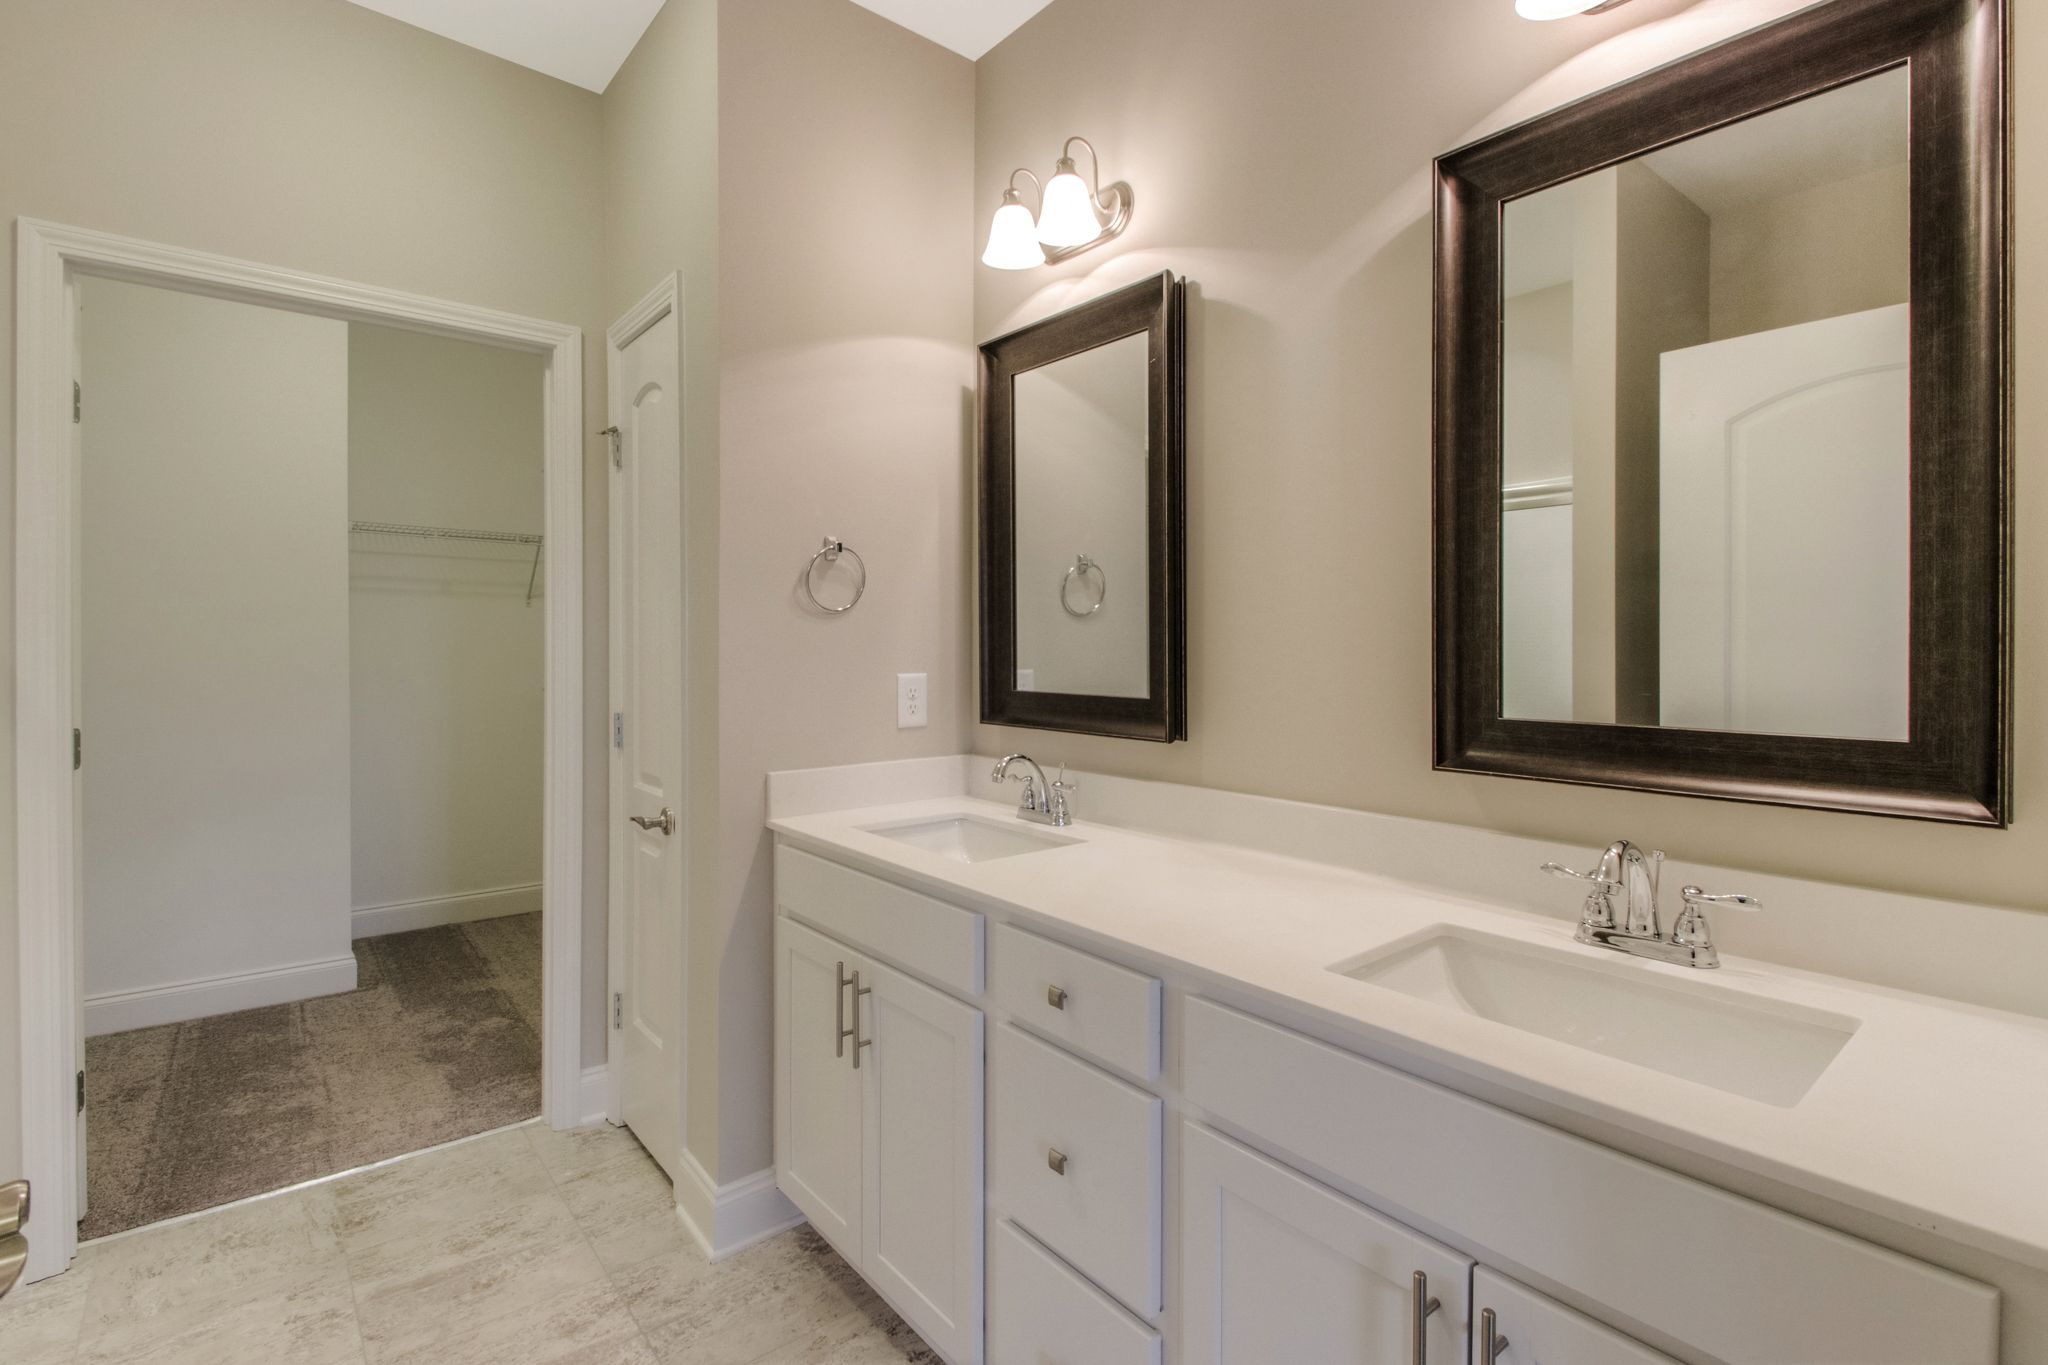 Bathroom featured in The Ashleigh Courtyard Cottage By Goodall Homes in Nashville, TN